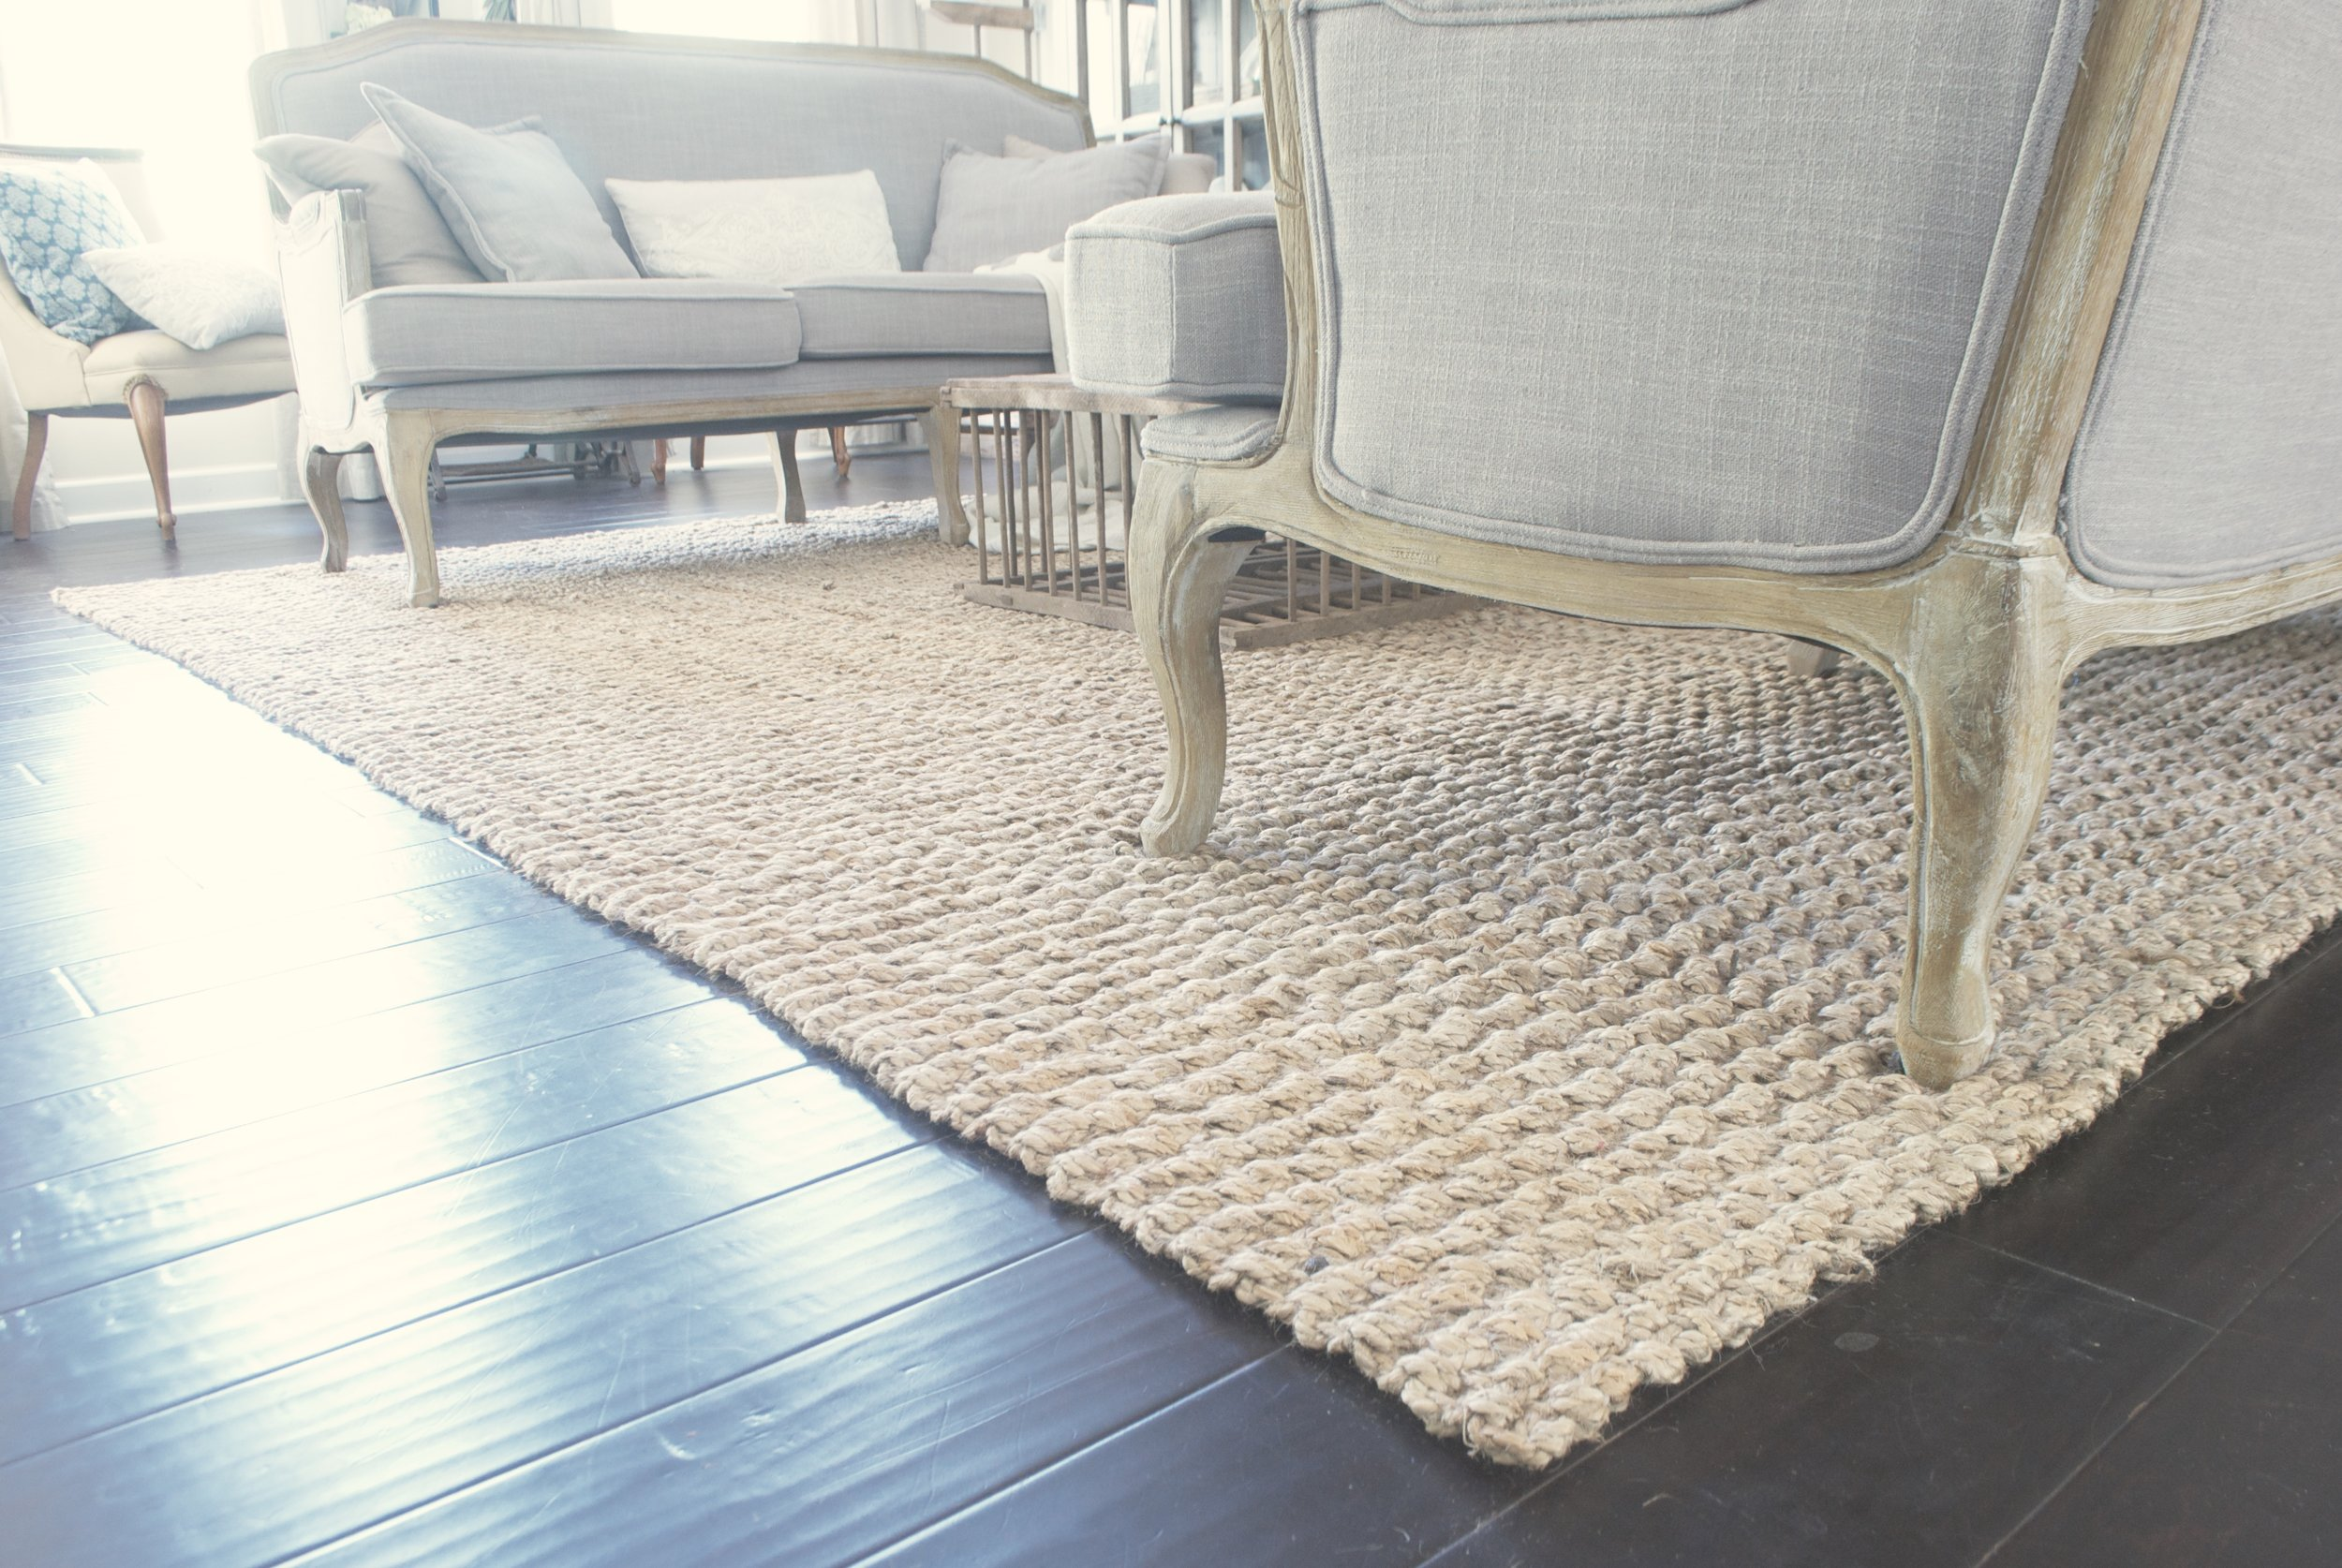 Farmhouse Rug- Jute Rug from World Market